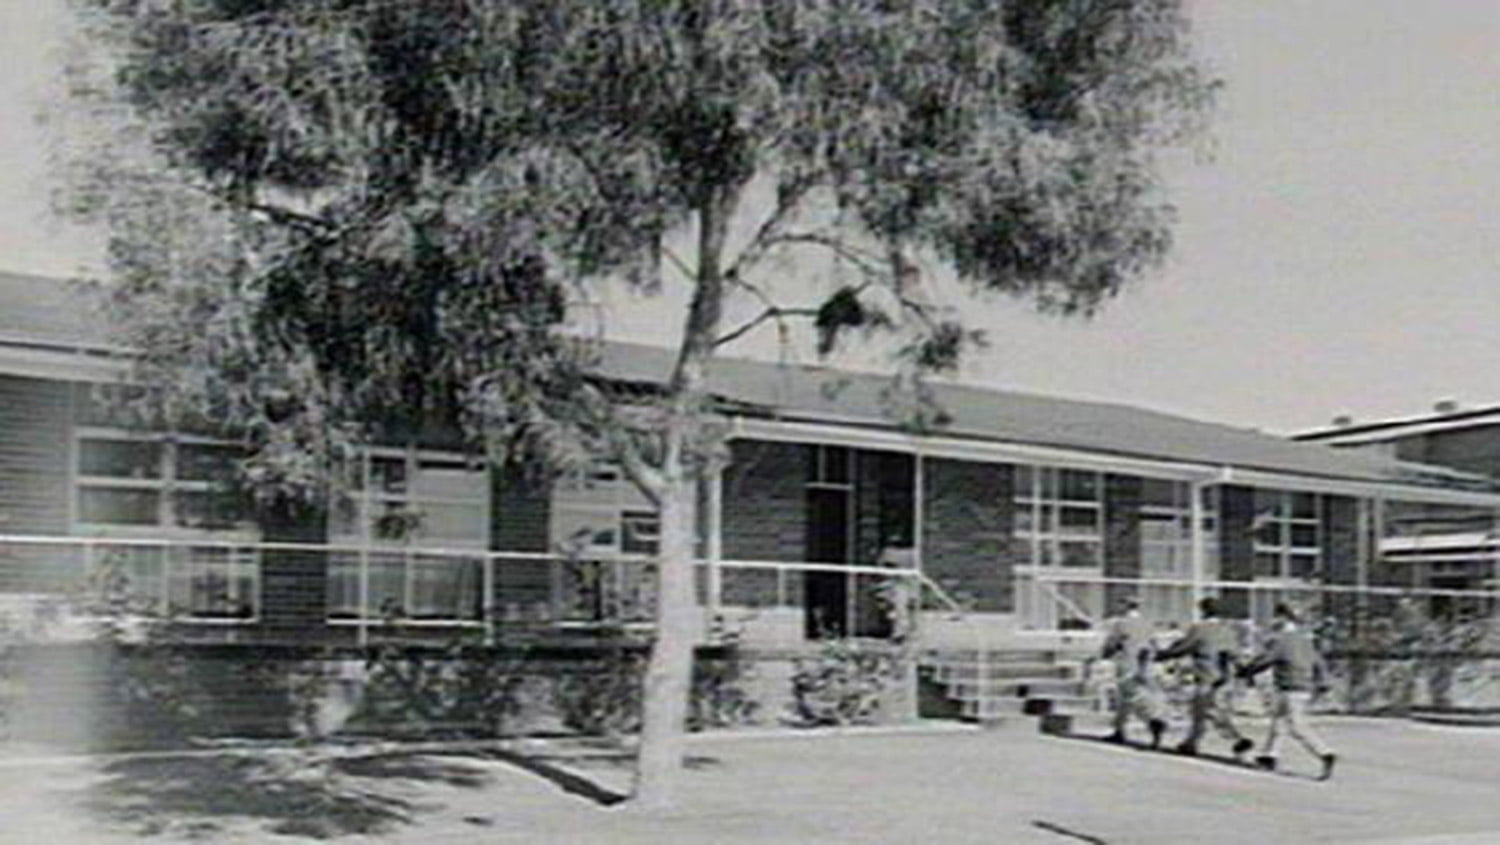 NSW boys home where incidents of abuse occurred